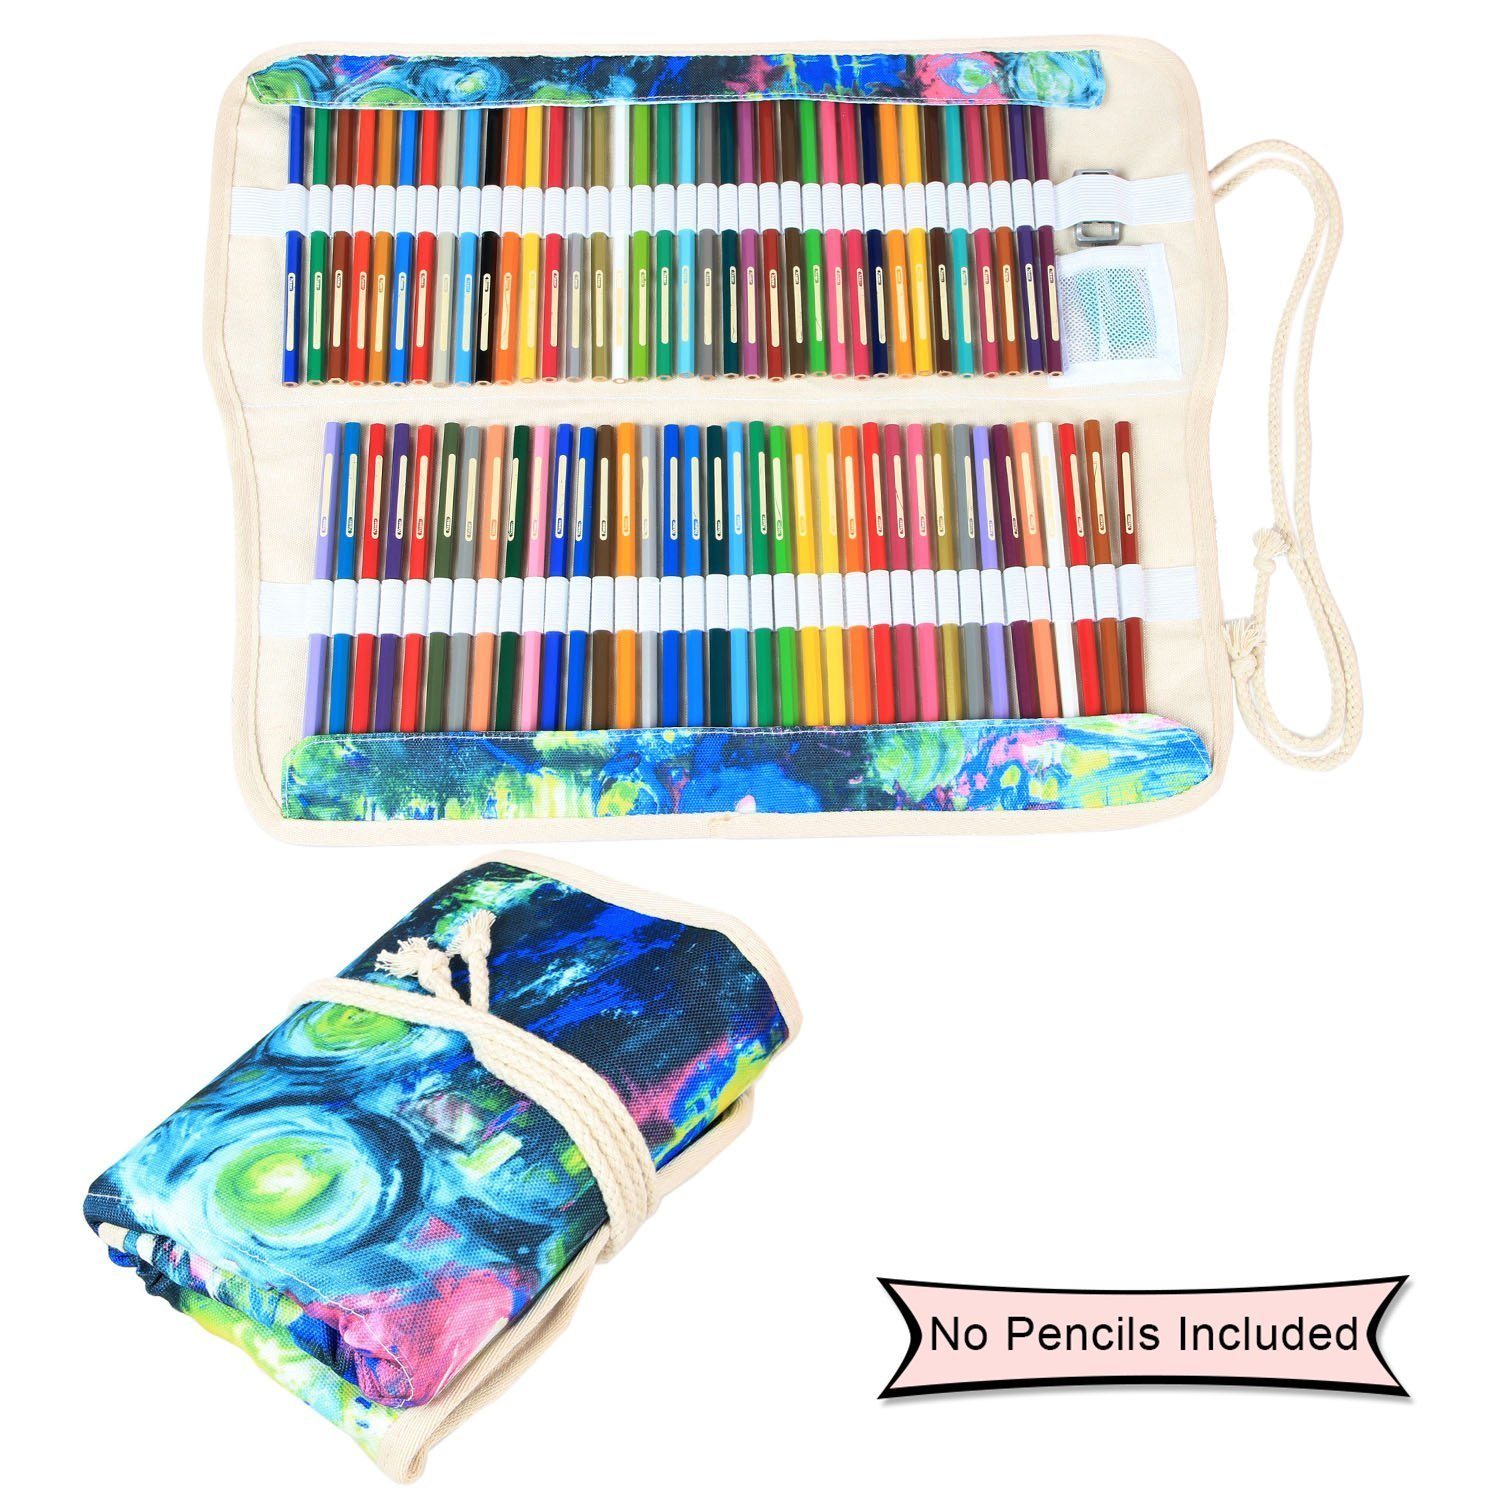 Damero Colored Pencils Case Wrap 100 Holes, Canvas Wrap Pencil Holder Storage Organizer Roll with Multi-purpose Pouch for Artist and Students, Painting(NO Pencil Included)